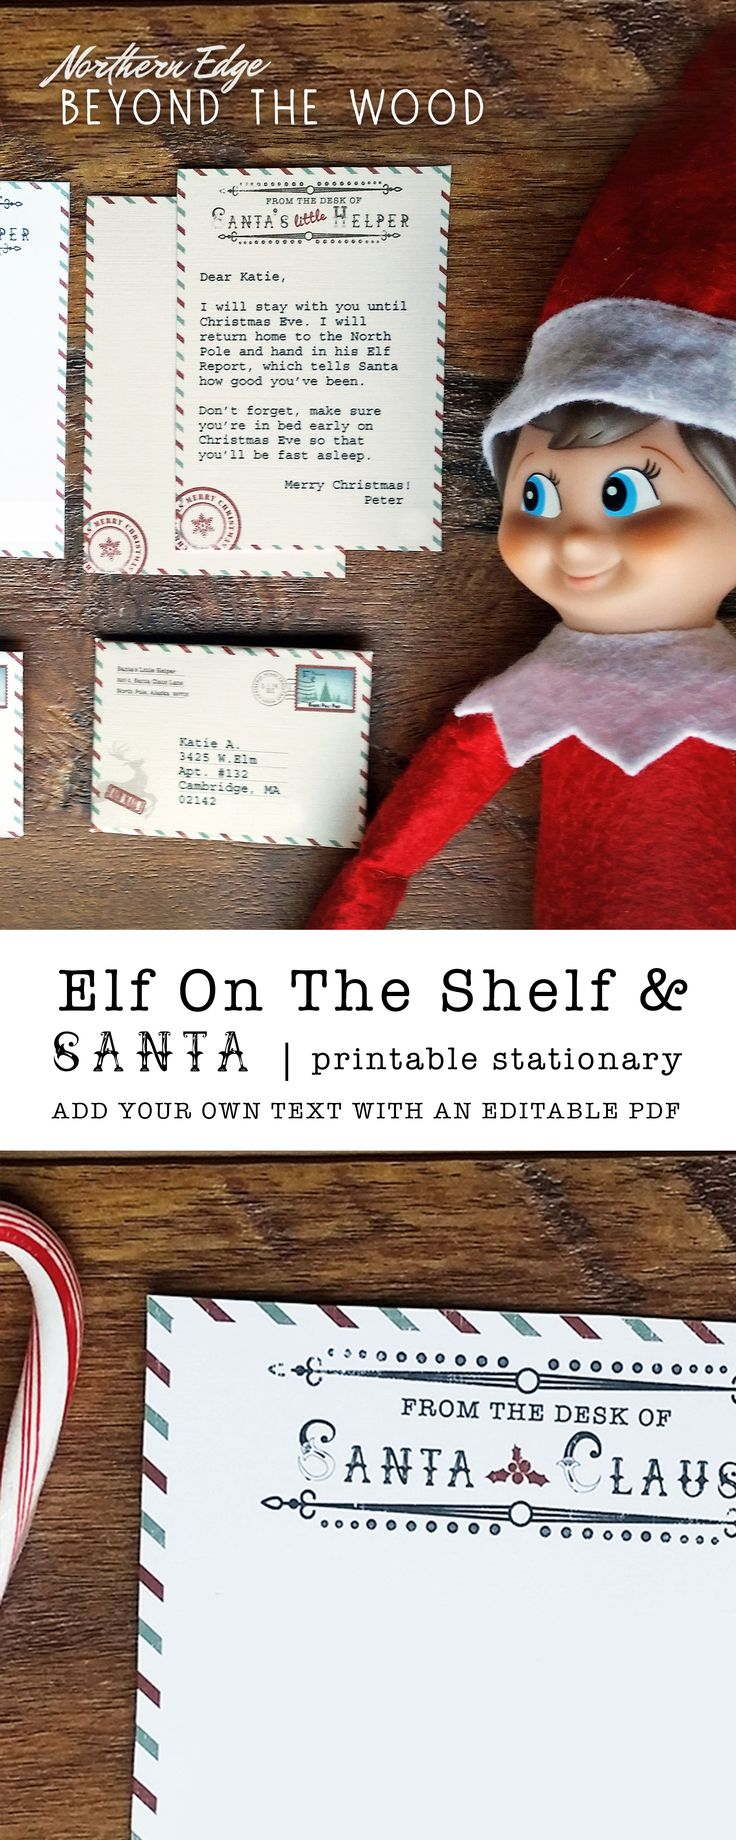 DIY Elf On The Shelf & Santa Letter. Add your own text to this downloadable PDF. elf on the shelf letter, elf on the shelf letters, elf on the shelf letter to kids, elf on the shelf letter from Santa, elf on the shelf letter printable, Elf on the shelf ideas, elf on the shelf ideas funny, elf on the shelf ideas for kids, elf on the shelf for toddlers, elf on the shelf arrival, elf on the shelf letter, santa letter, santa letter printable, santa letter to kids, santa letter template, holiday…